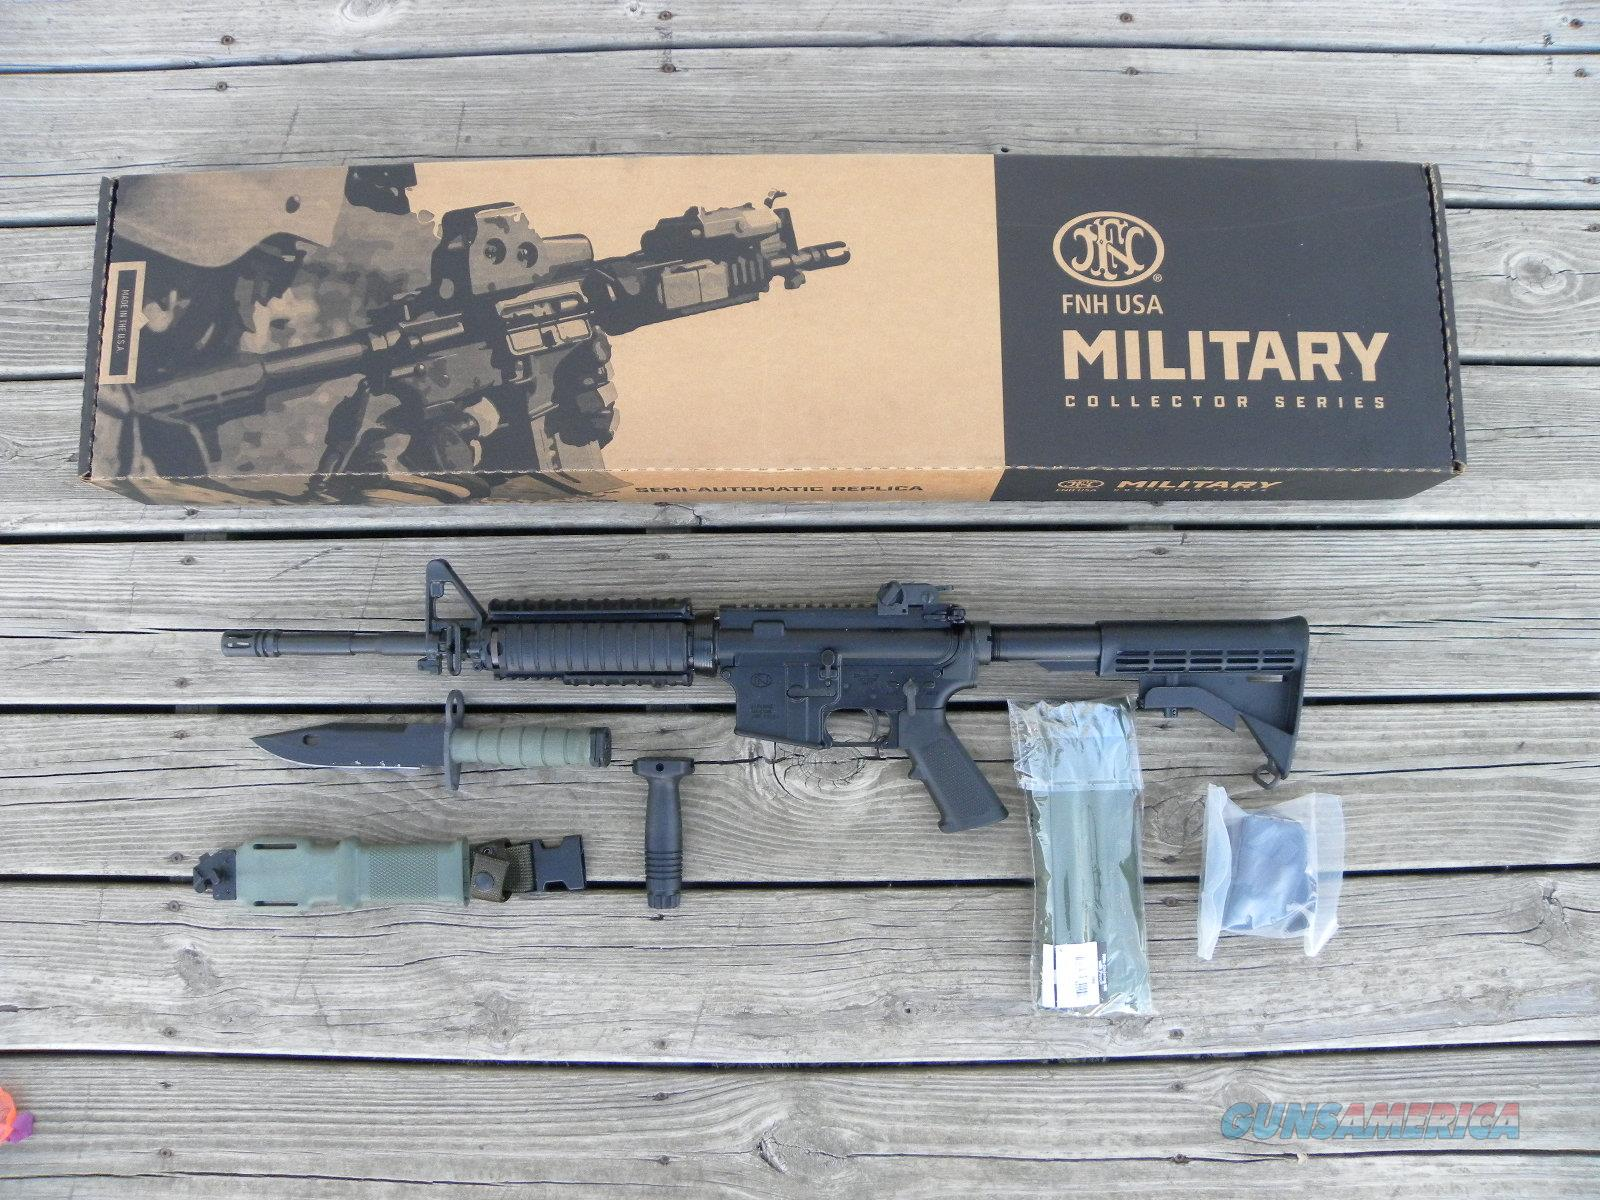 """*NEW* FNH Military Collector M4 14.7"""" 36318-01  Guns > Rifles > FNH - Fabrique Nationale (FN) Rifles > Semi-auto > Other"""